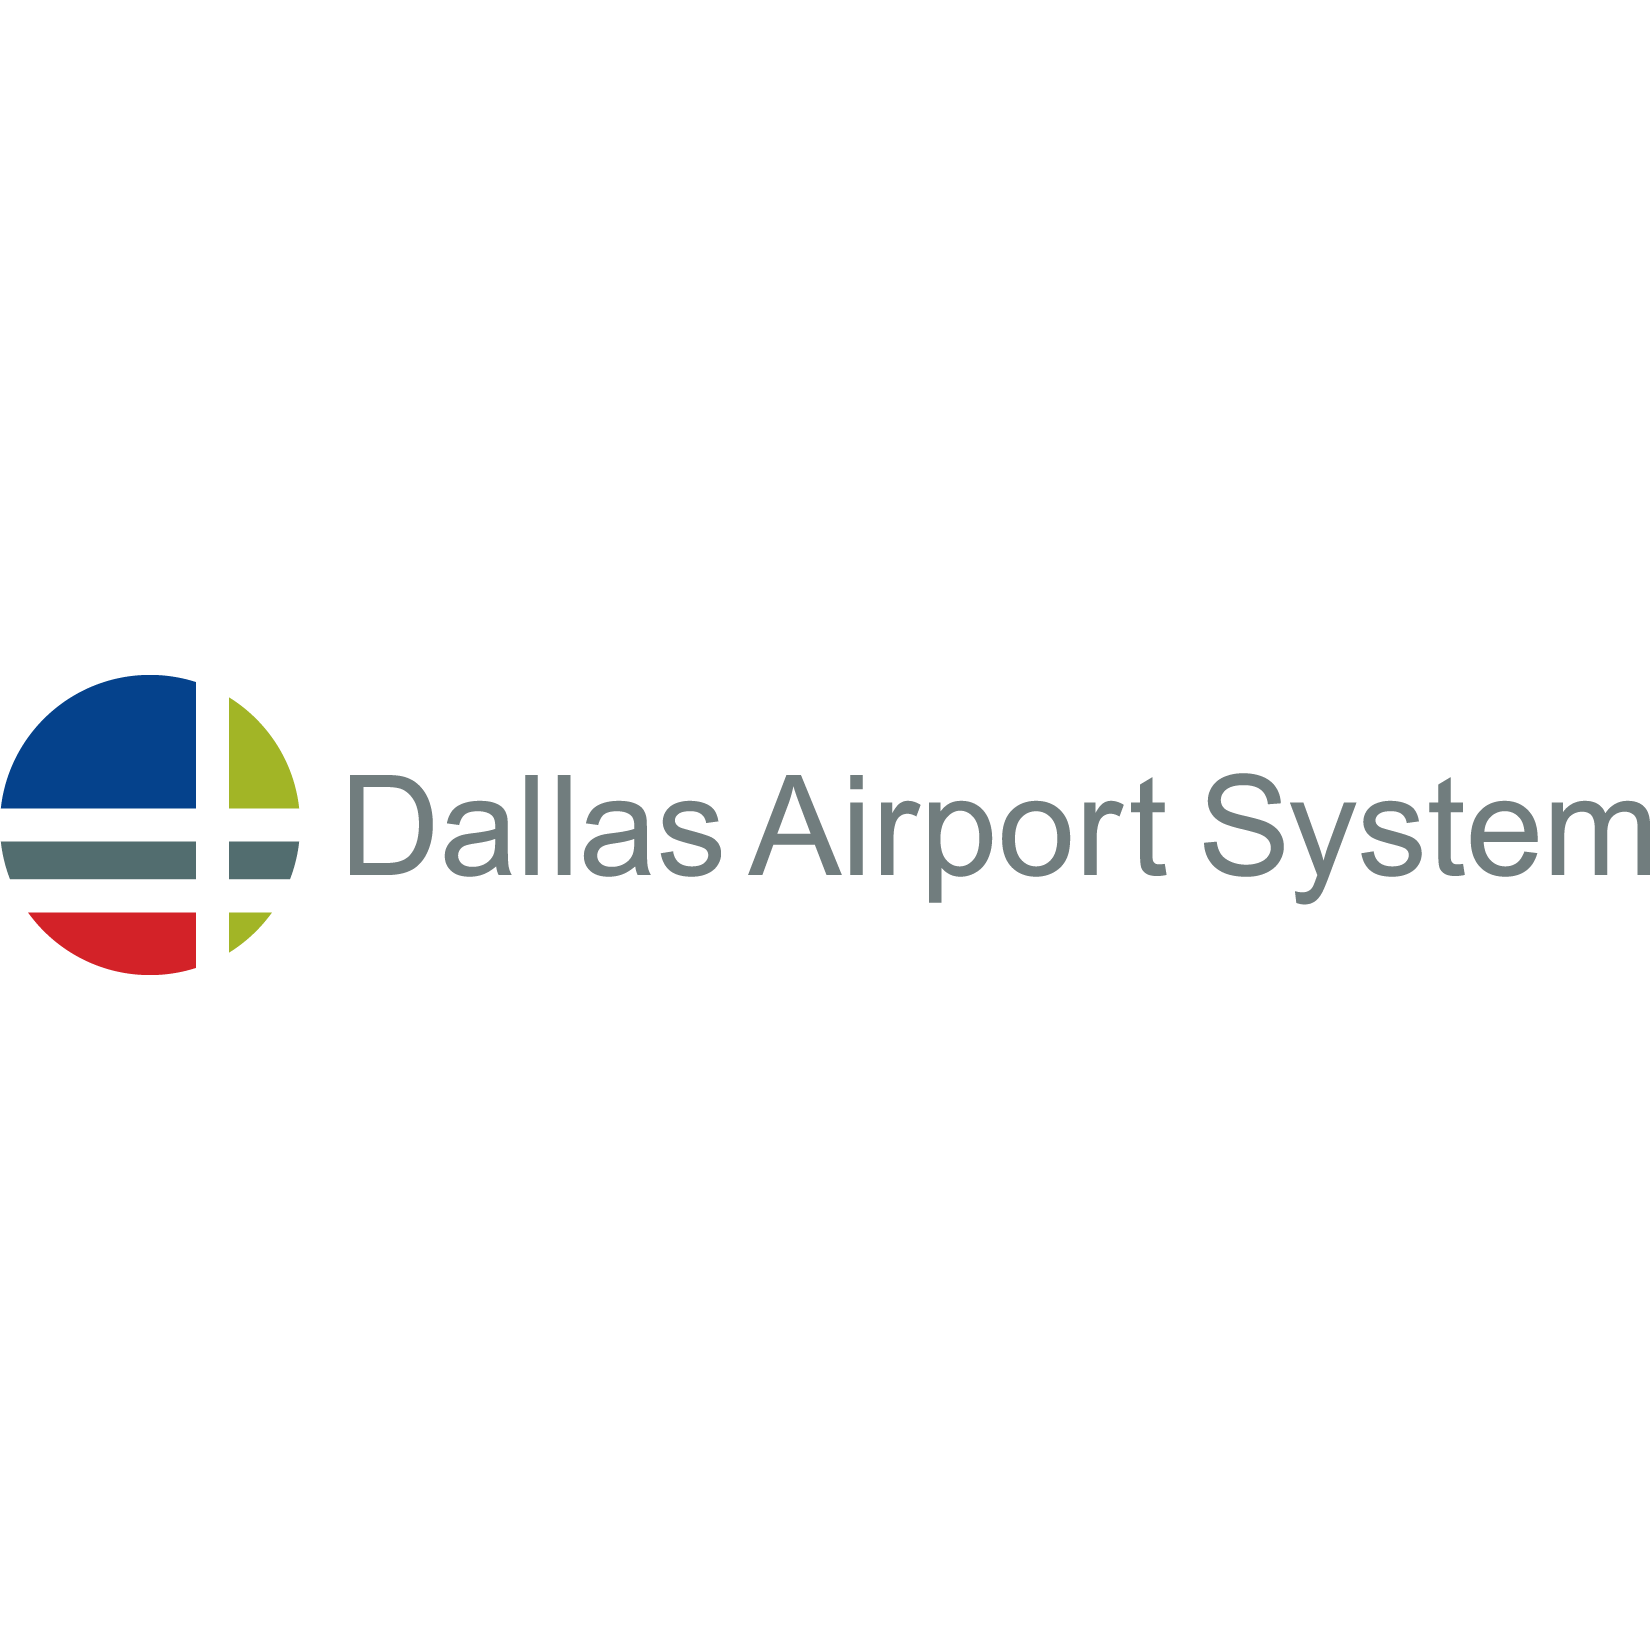 Dallas Airport System